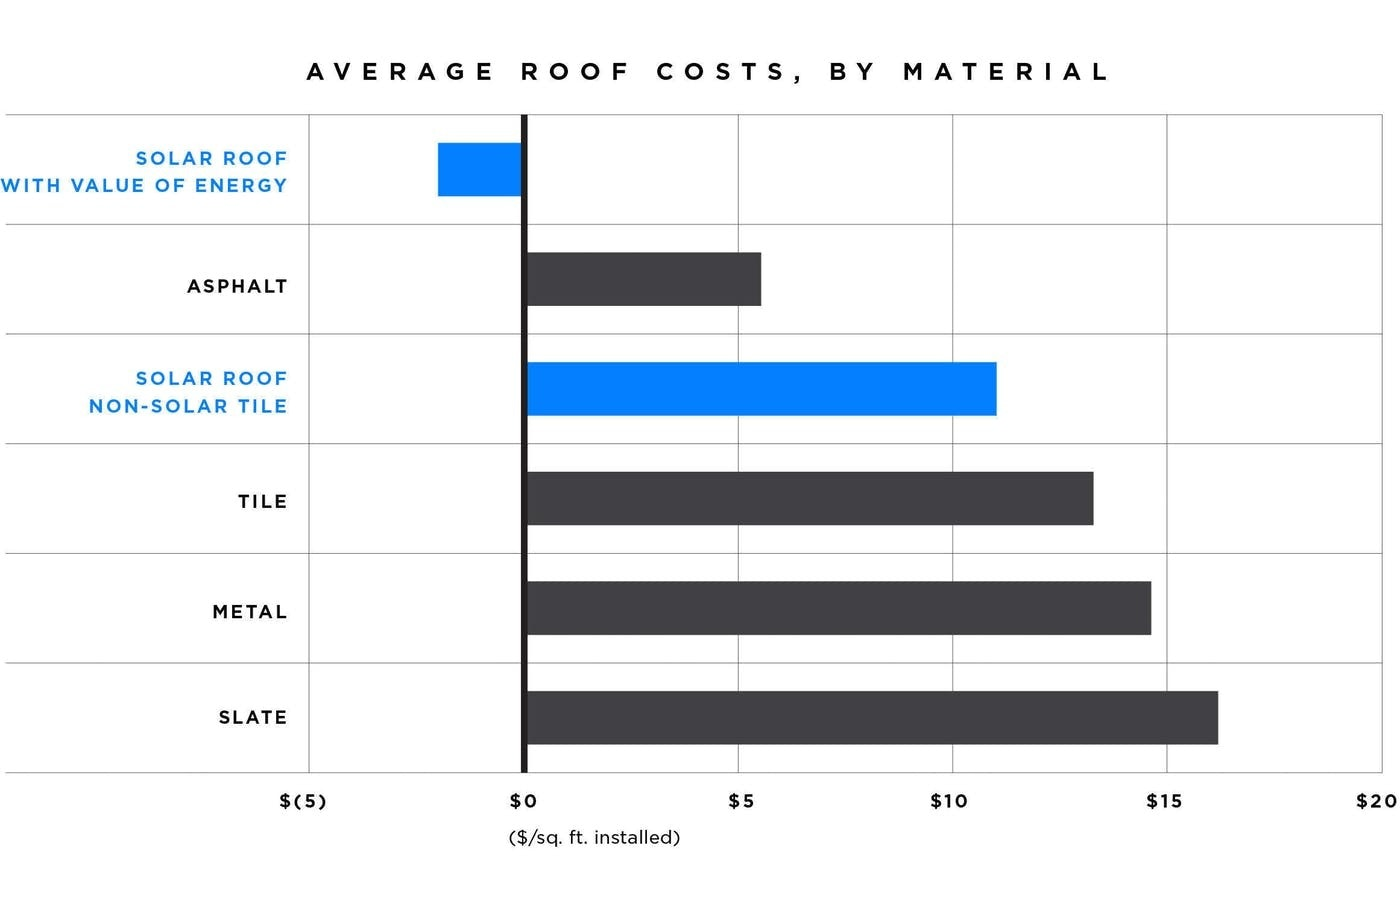 ... Square Foot To Install. DIY Installations Come Even Cheaper. So Right  Off The Bat, Teslau0027s Pricing Puts It More In The Range Of Premium Roof  Materials, ...